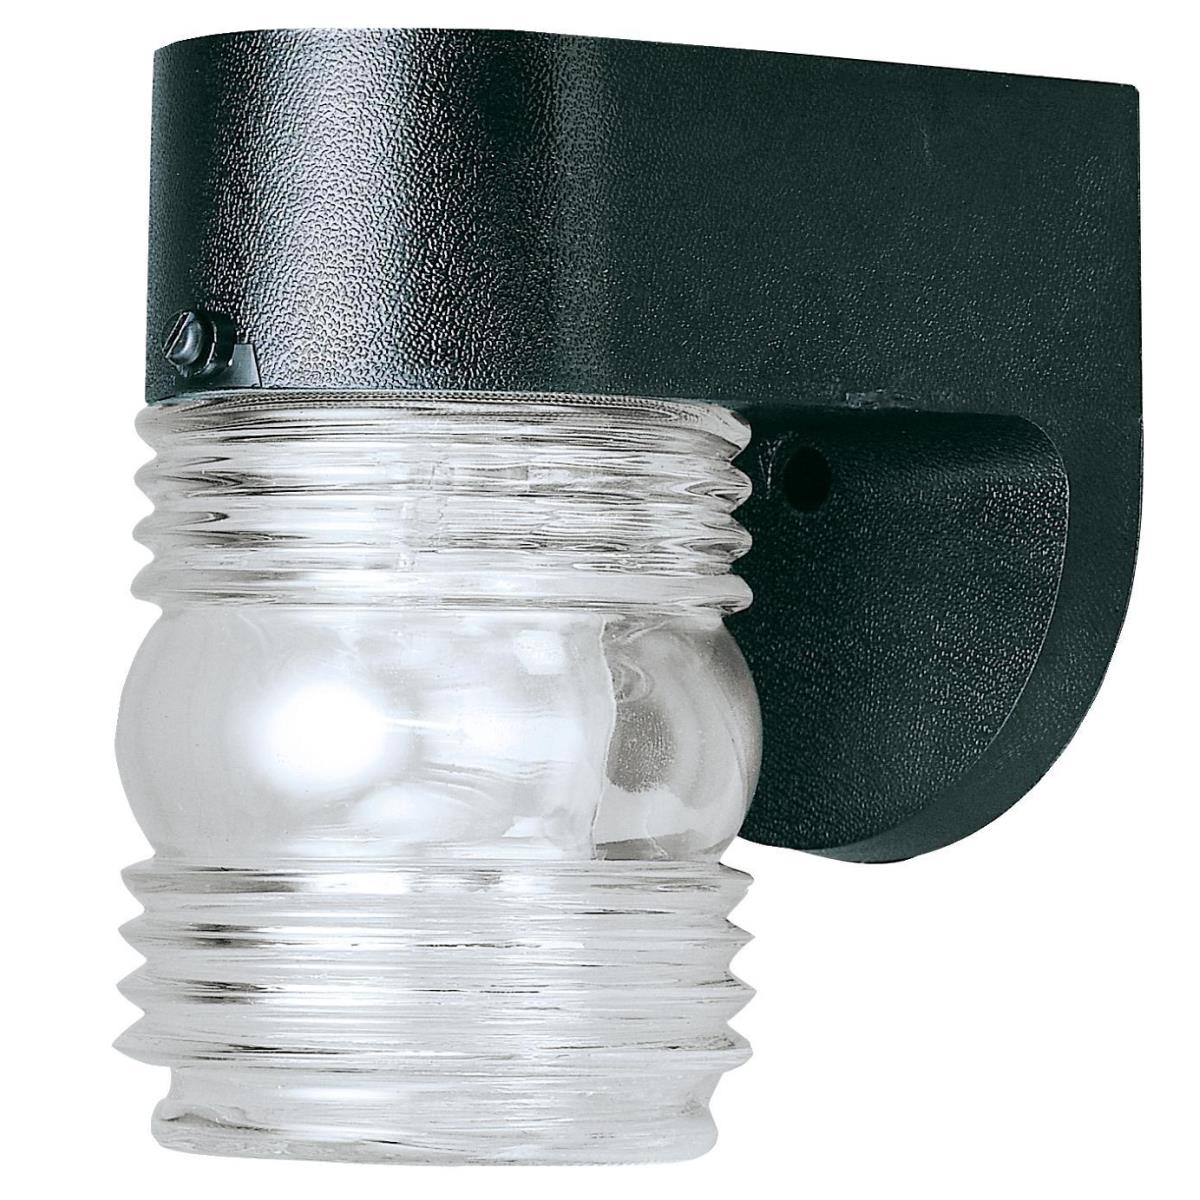 1 Light Hi-Impact Polypropylene Wall Fixture Black Finish with Clear Glass